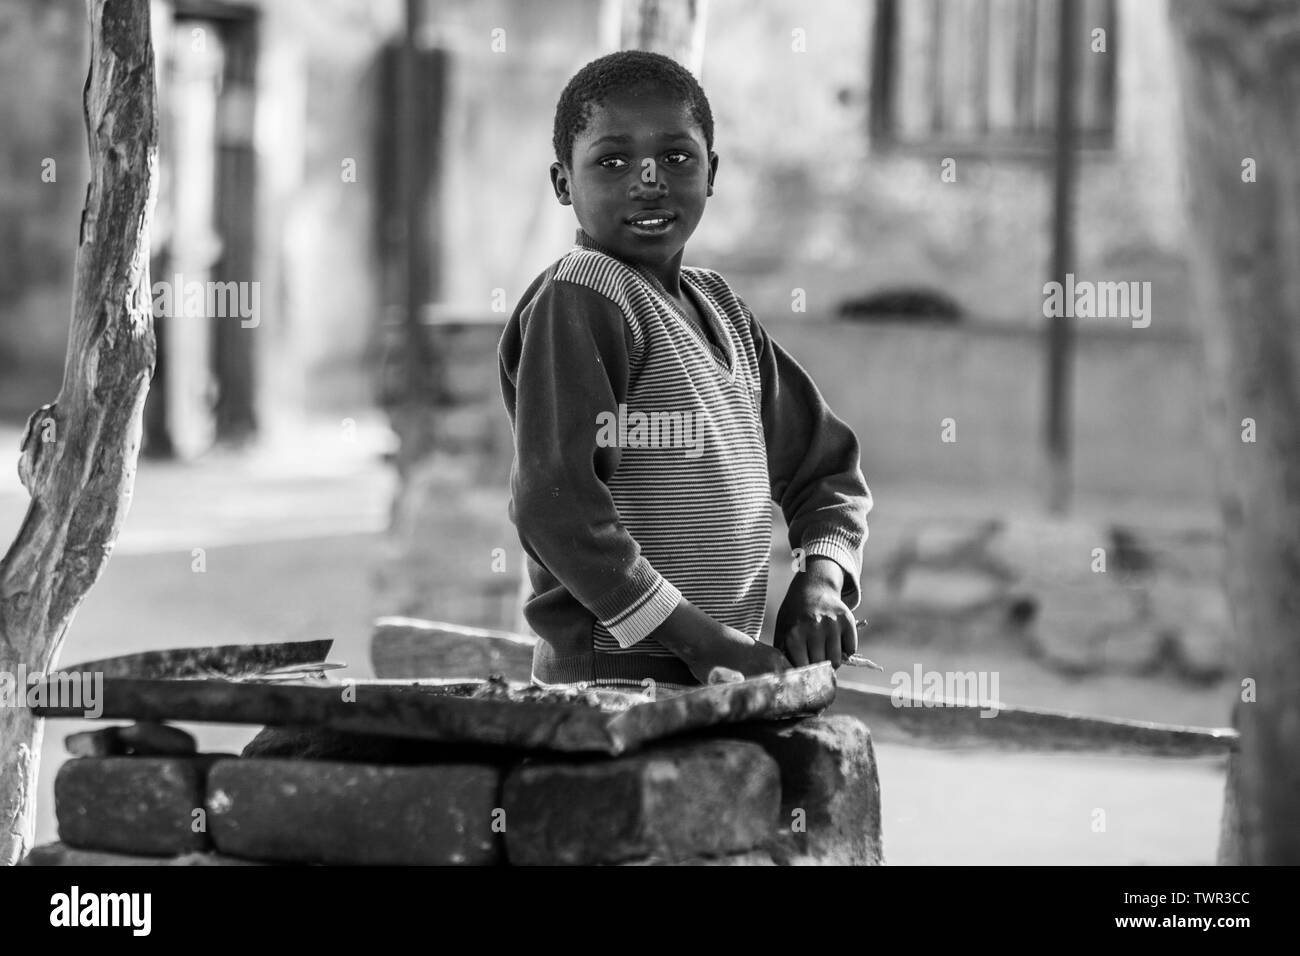 A child street vendor standing by his fryer waiting for customers - Stock Image